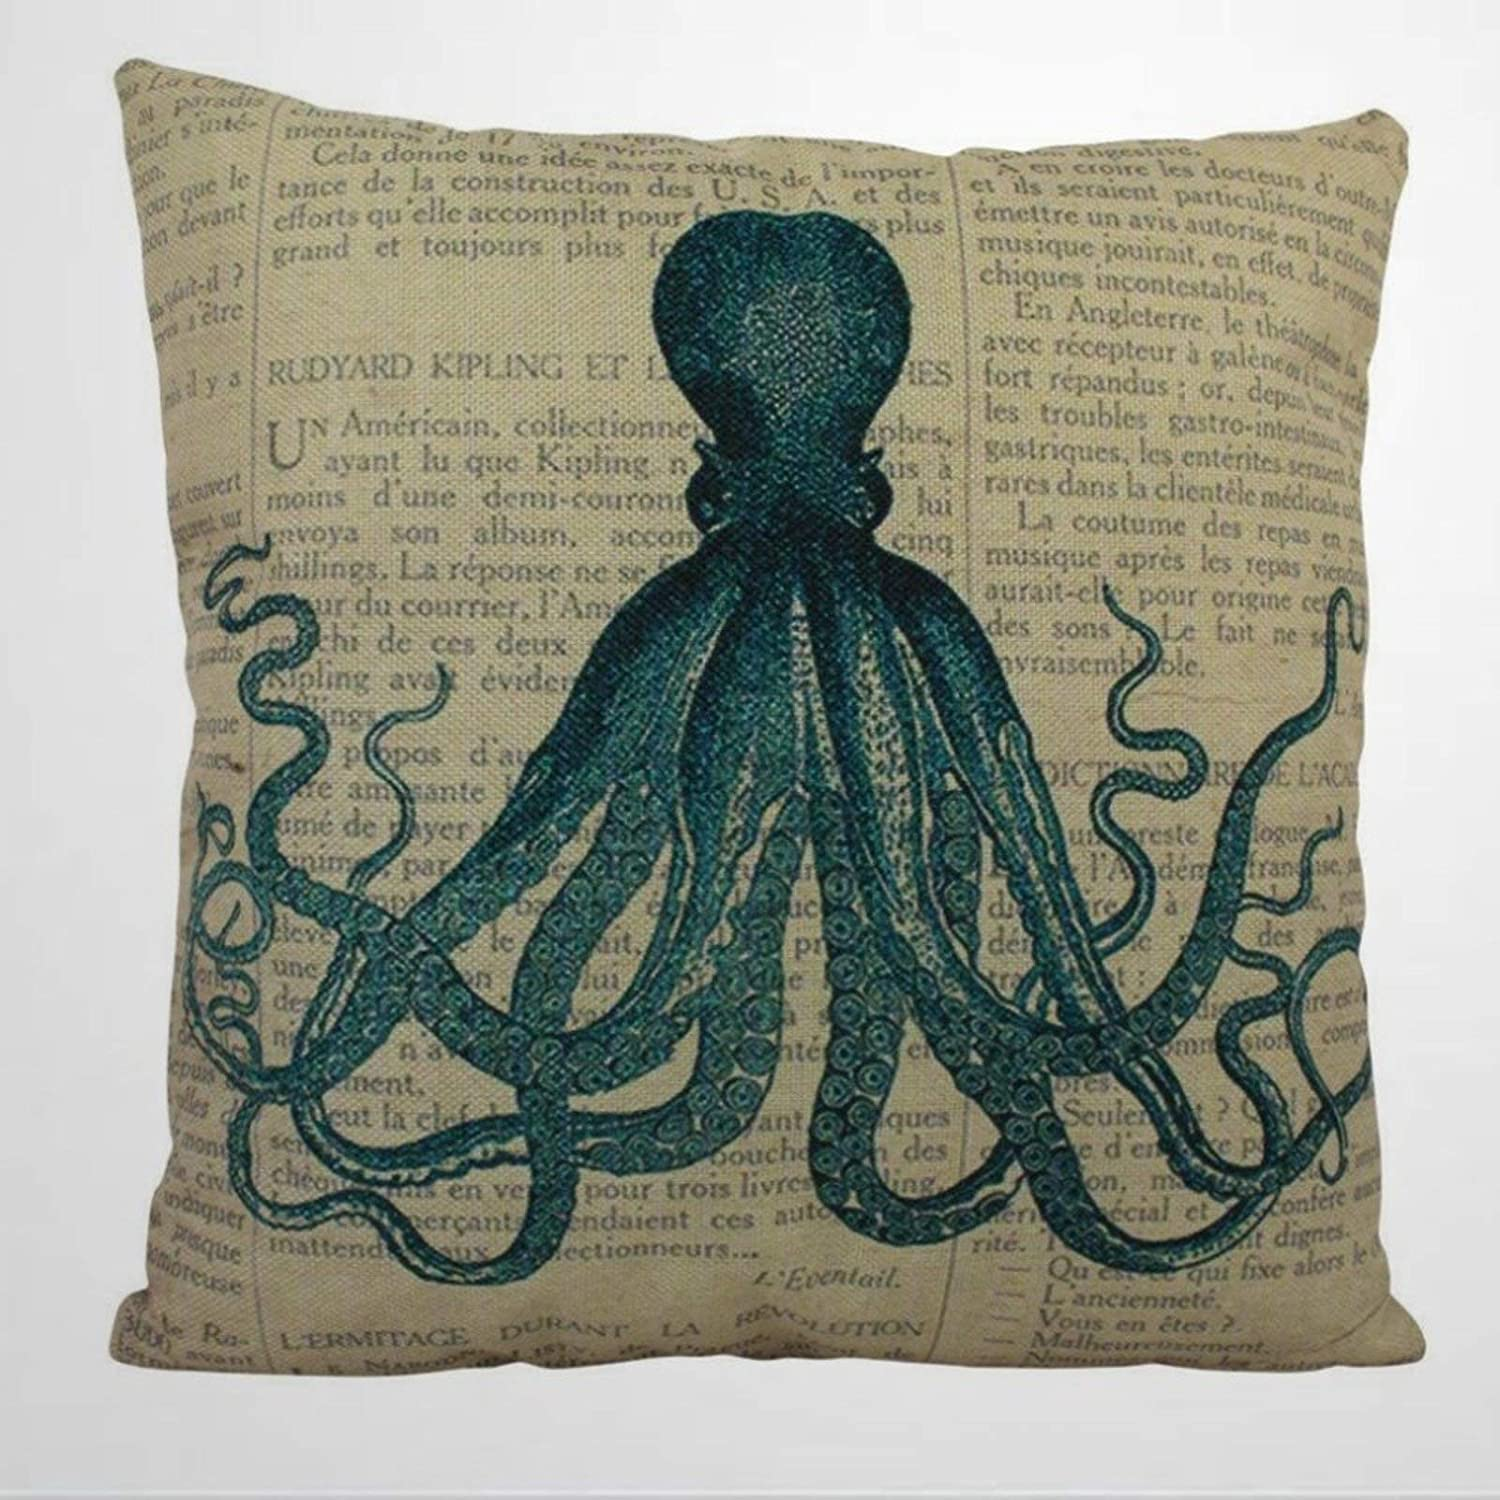 DONL9BAUER Octopus Coastal Nautical Decorative Throw Pillow Cover, Modern Design Throw Pillowcase,18x18 Inch Personalised Cushion Cover for Home Couch Sofa Bed Chair.